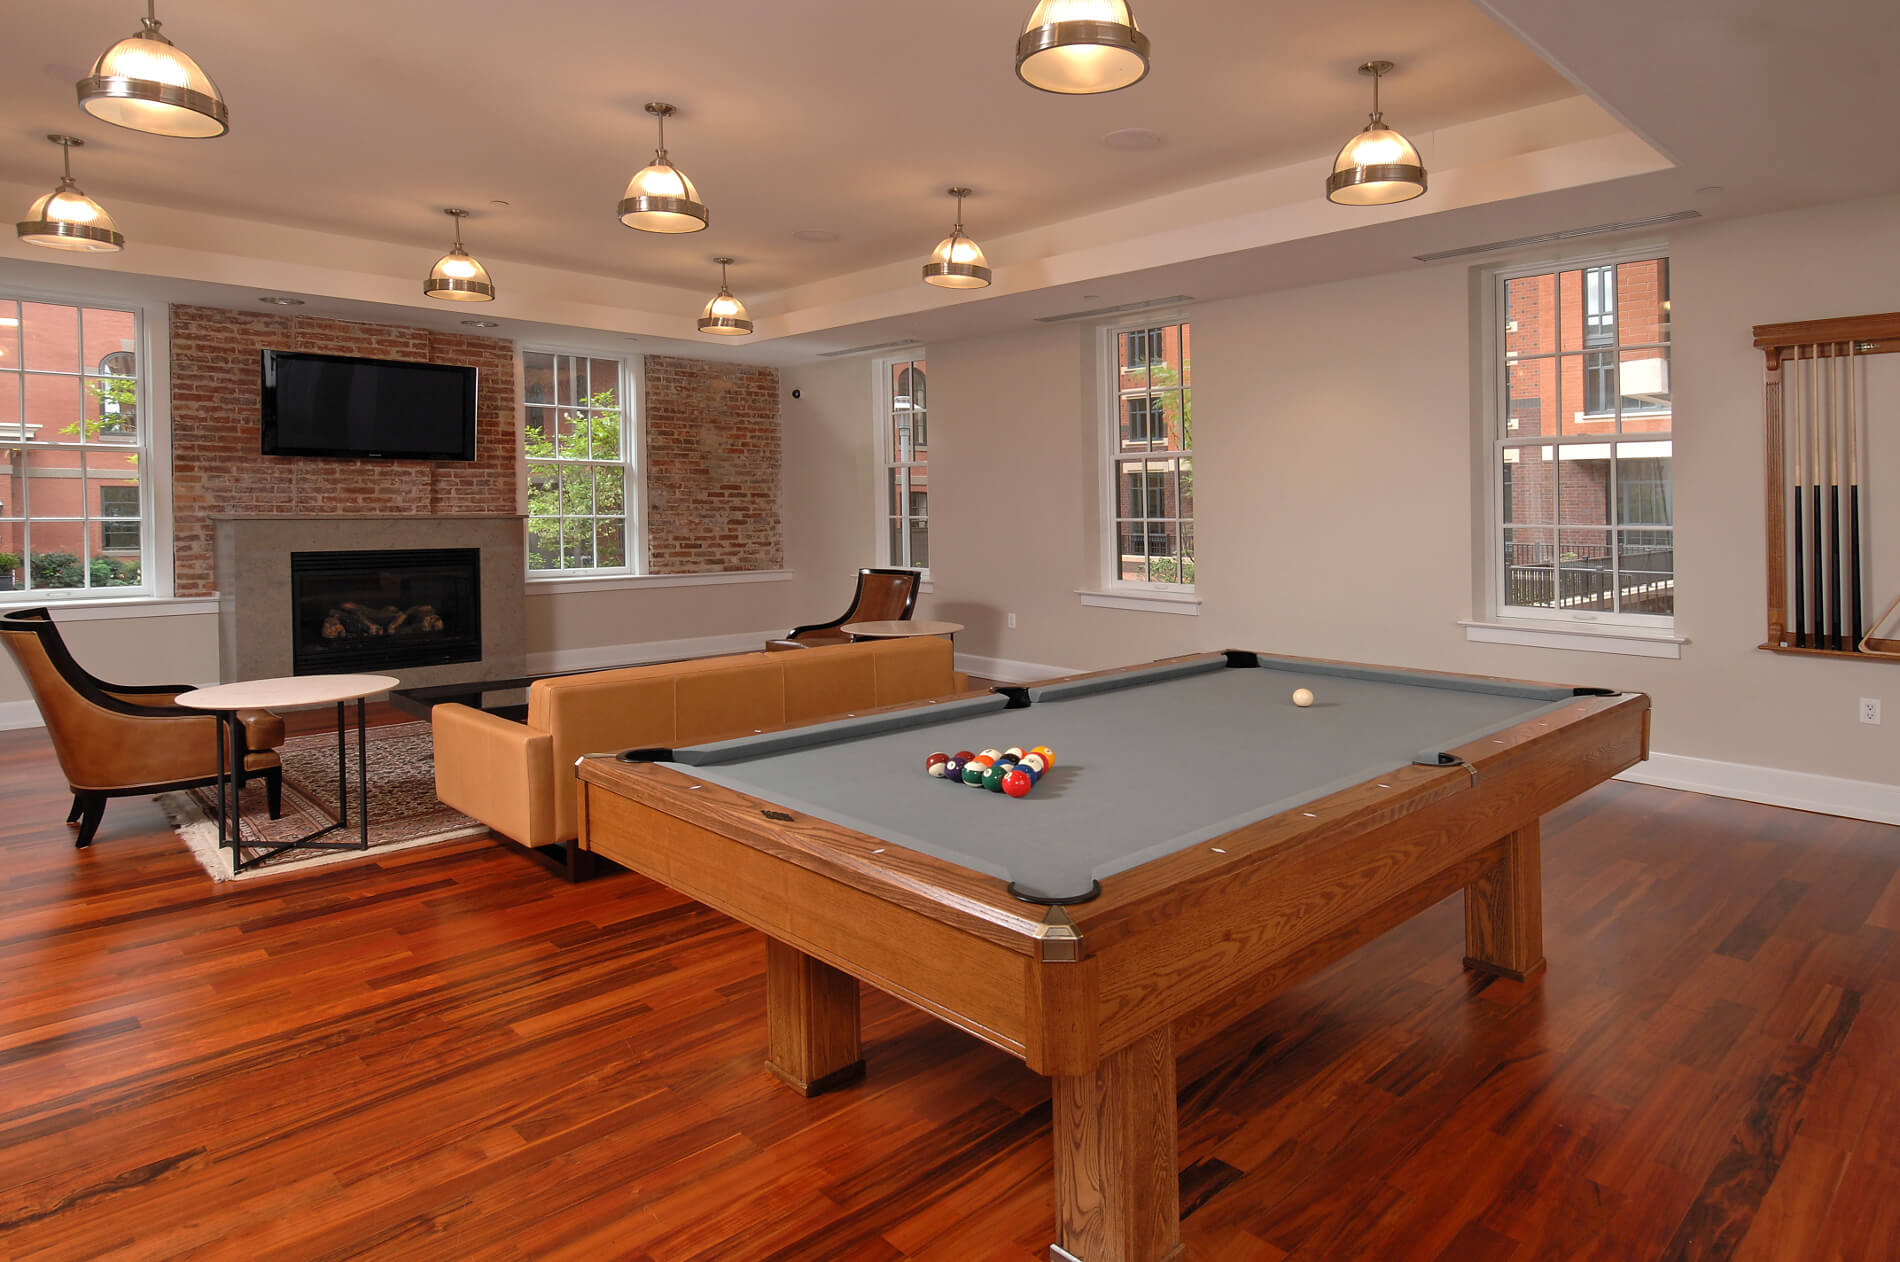 Pool table with seating, pendant lighting, fireplace and views of the outdoors